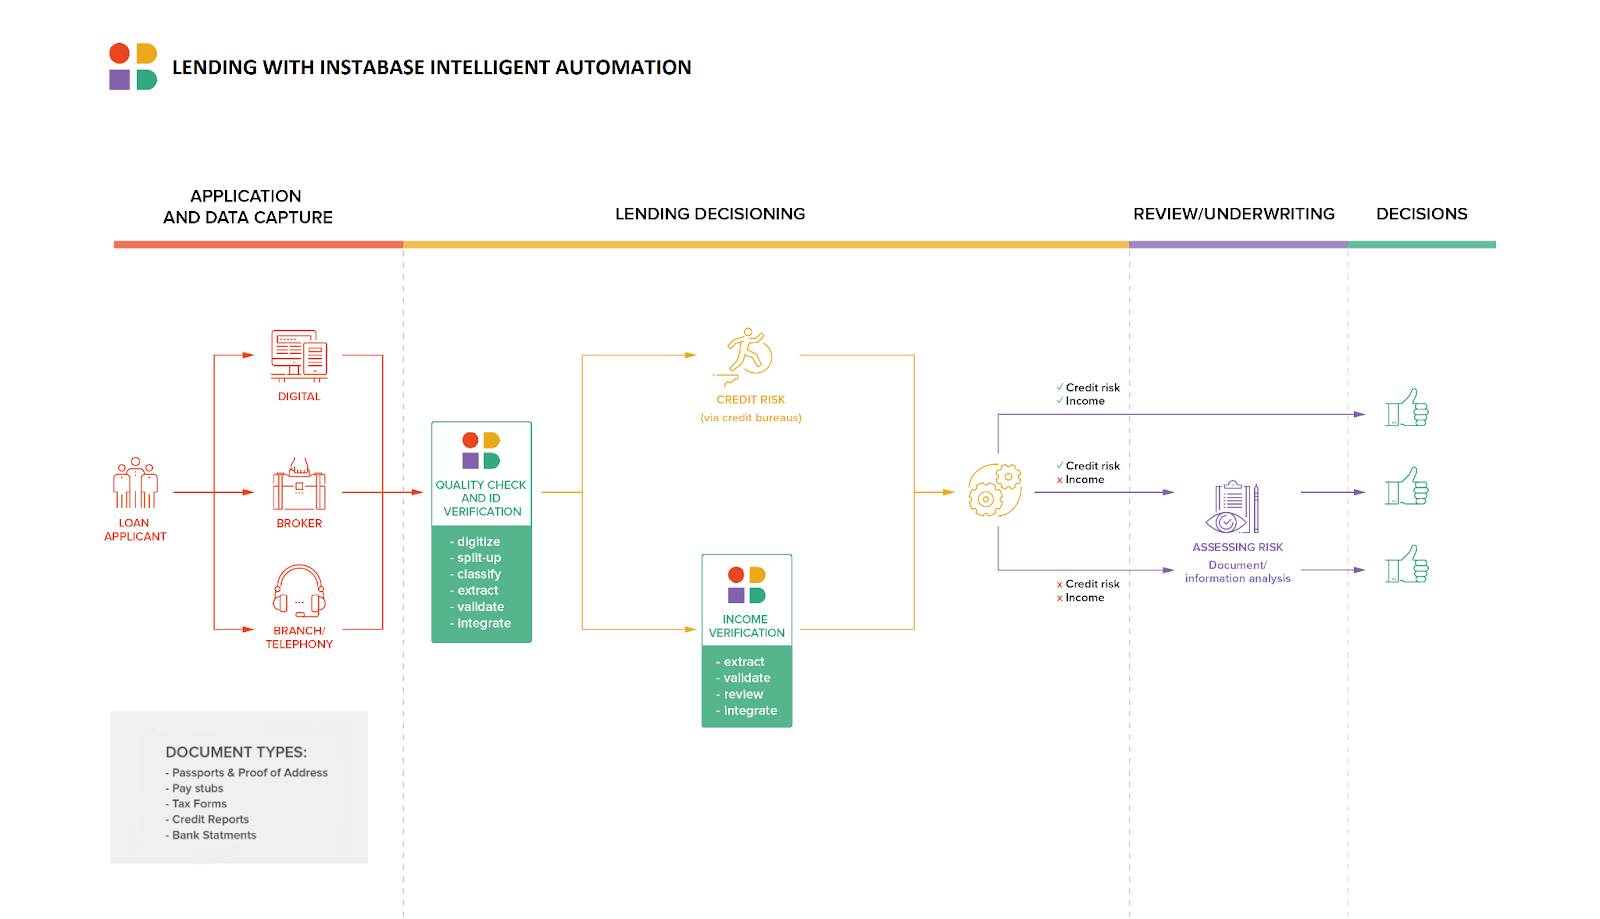 Instabase lending with intelligent automation